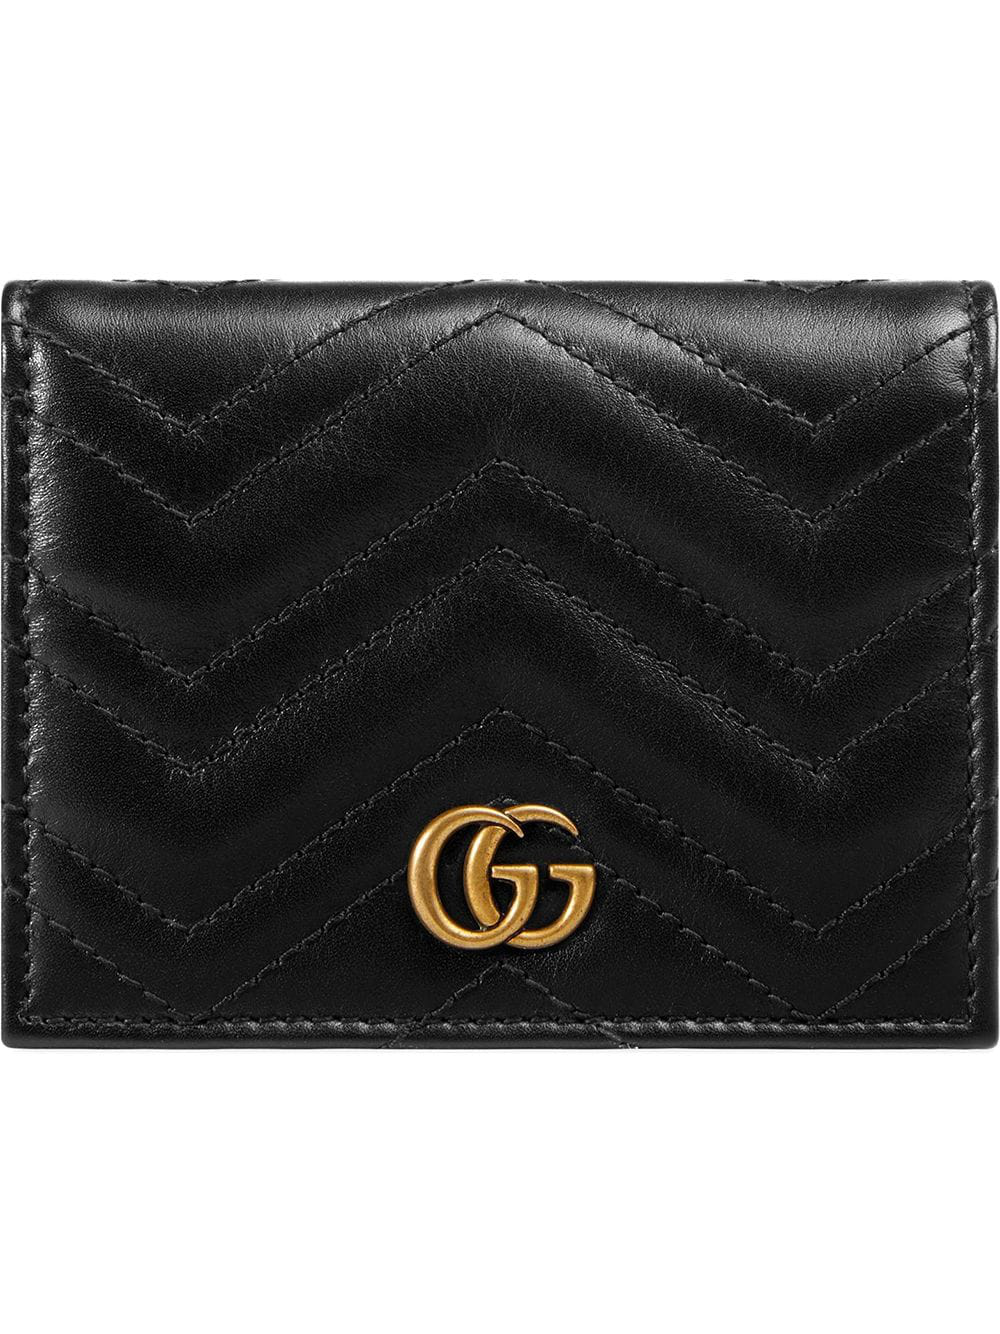 c4a26849e40e Gucci Gg Marmont Small Quilted Leather Wallet In 1000 Black | ModeSens